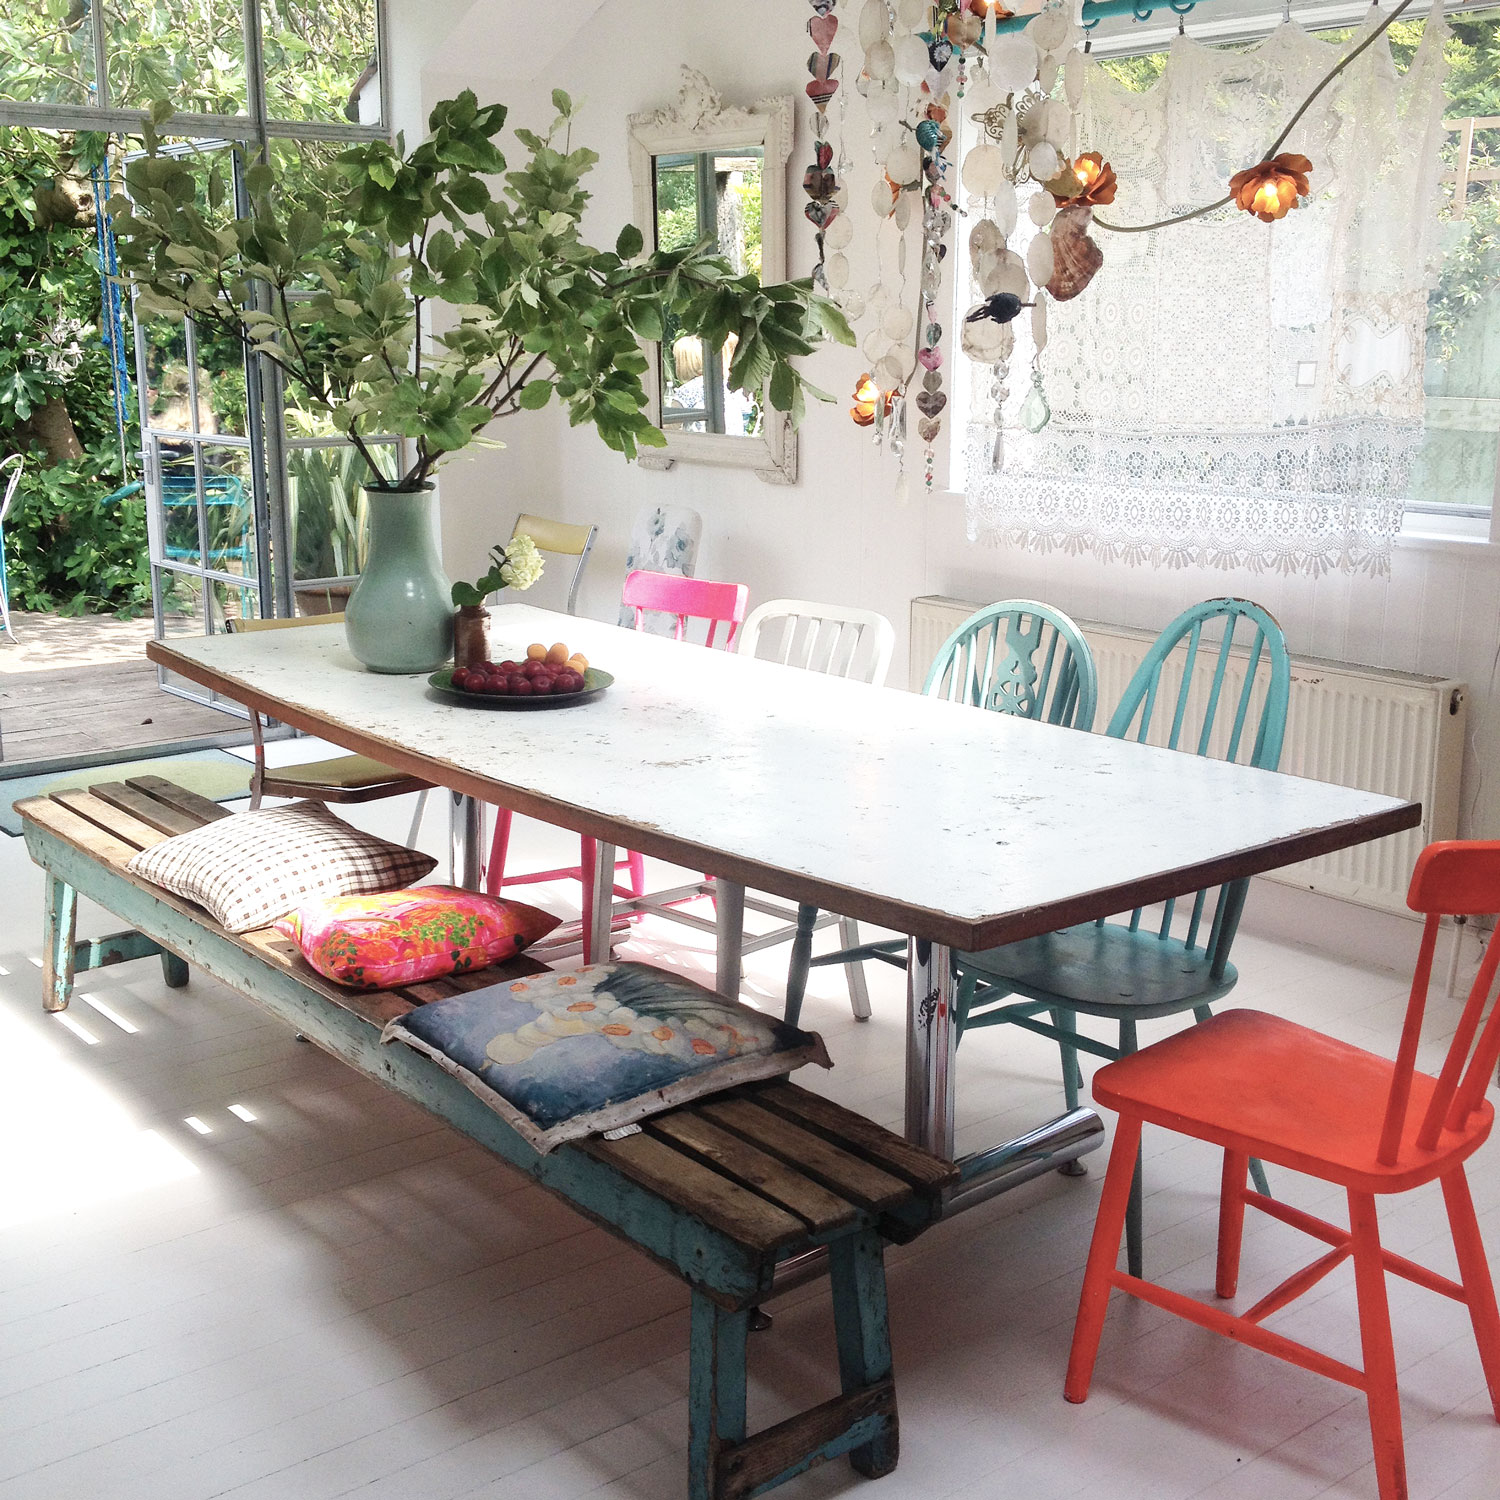 Boho kitchen | Hannah in the house